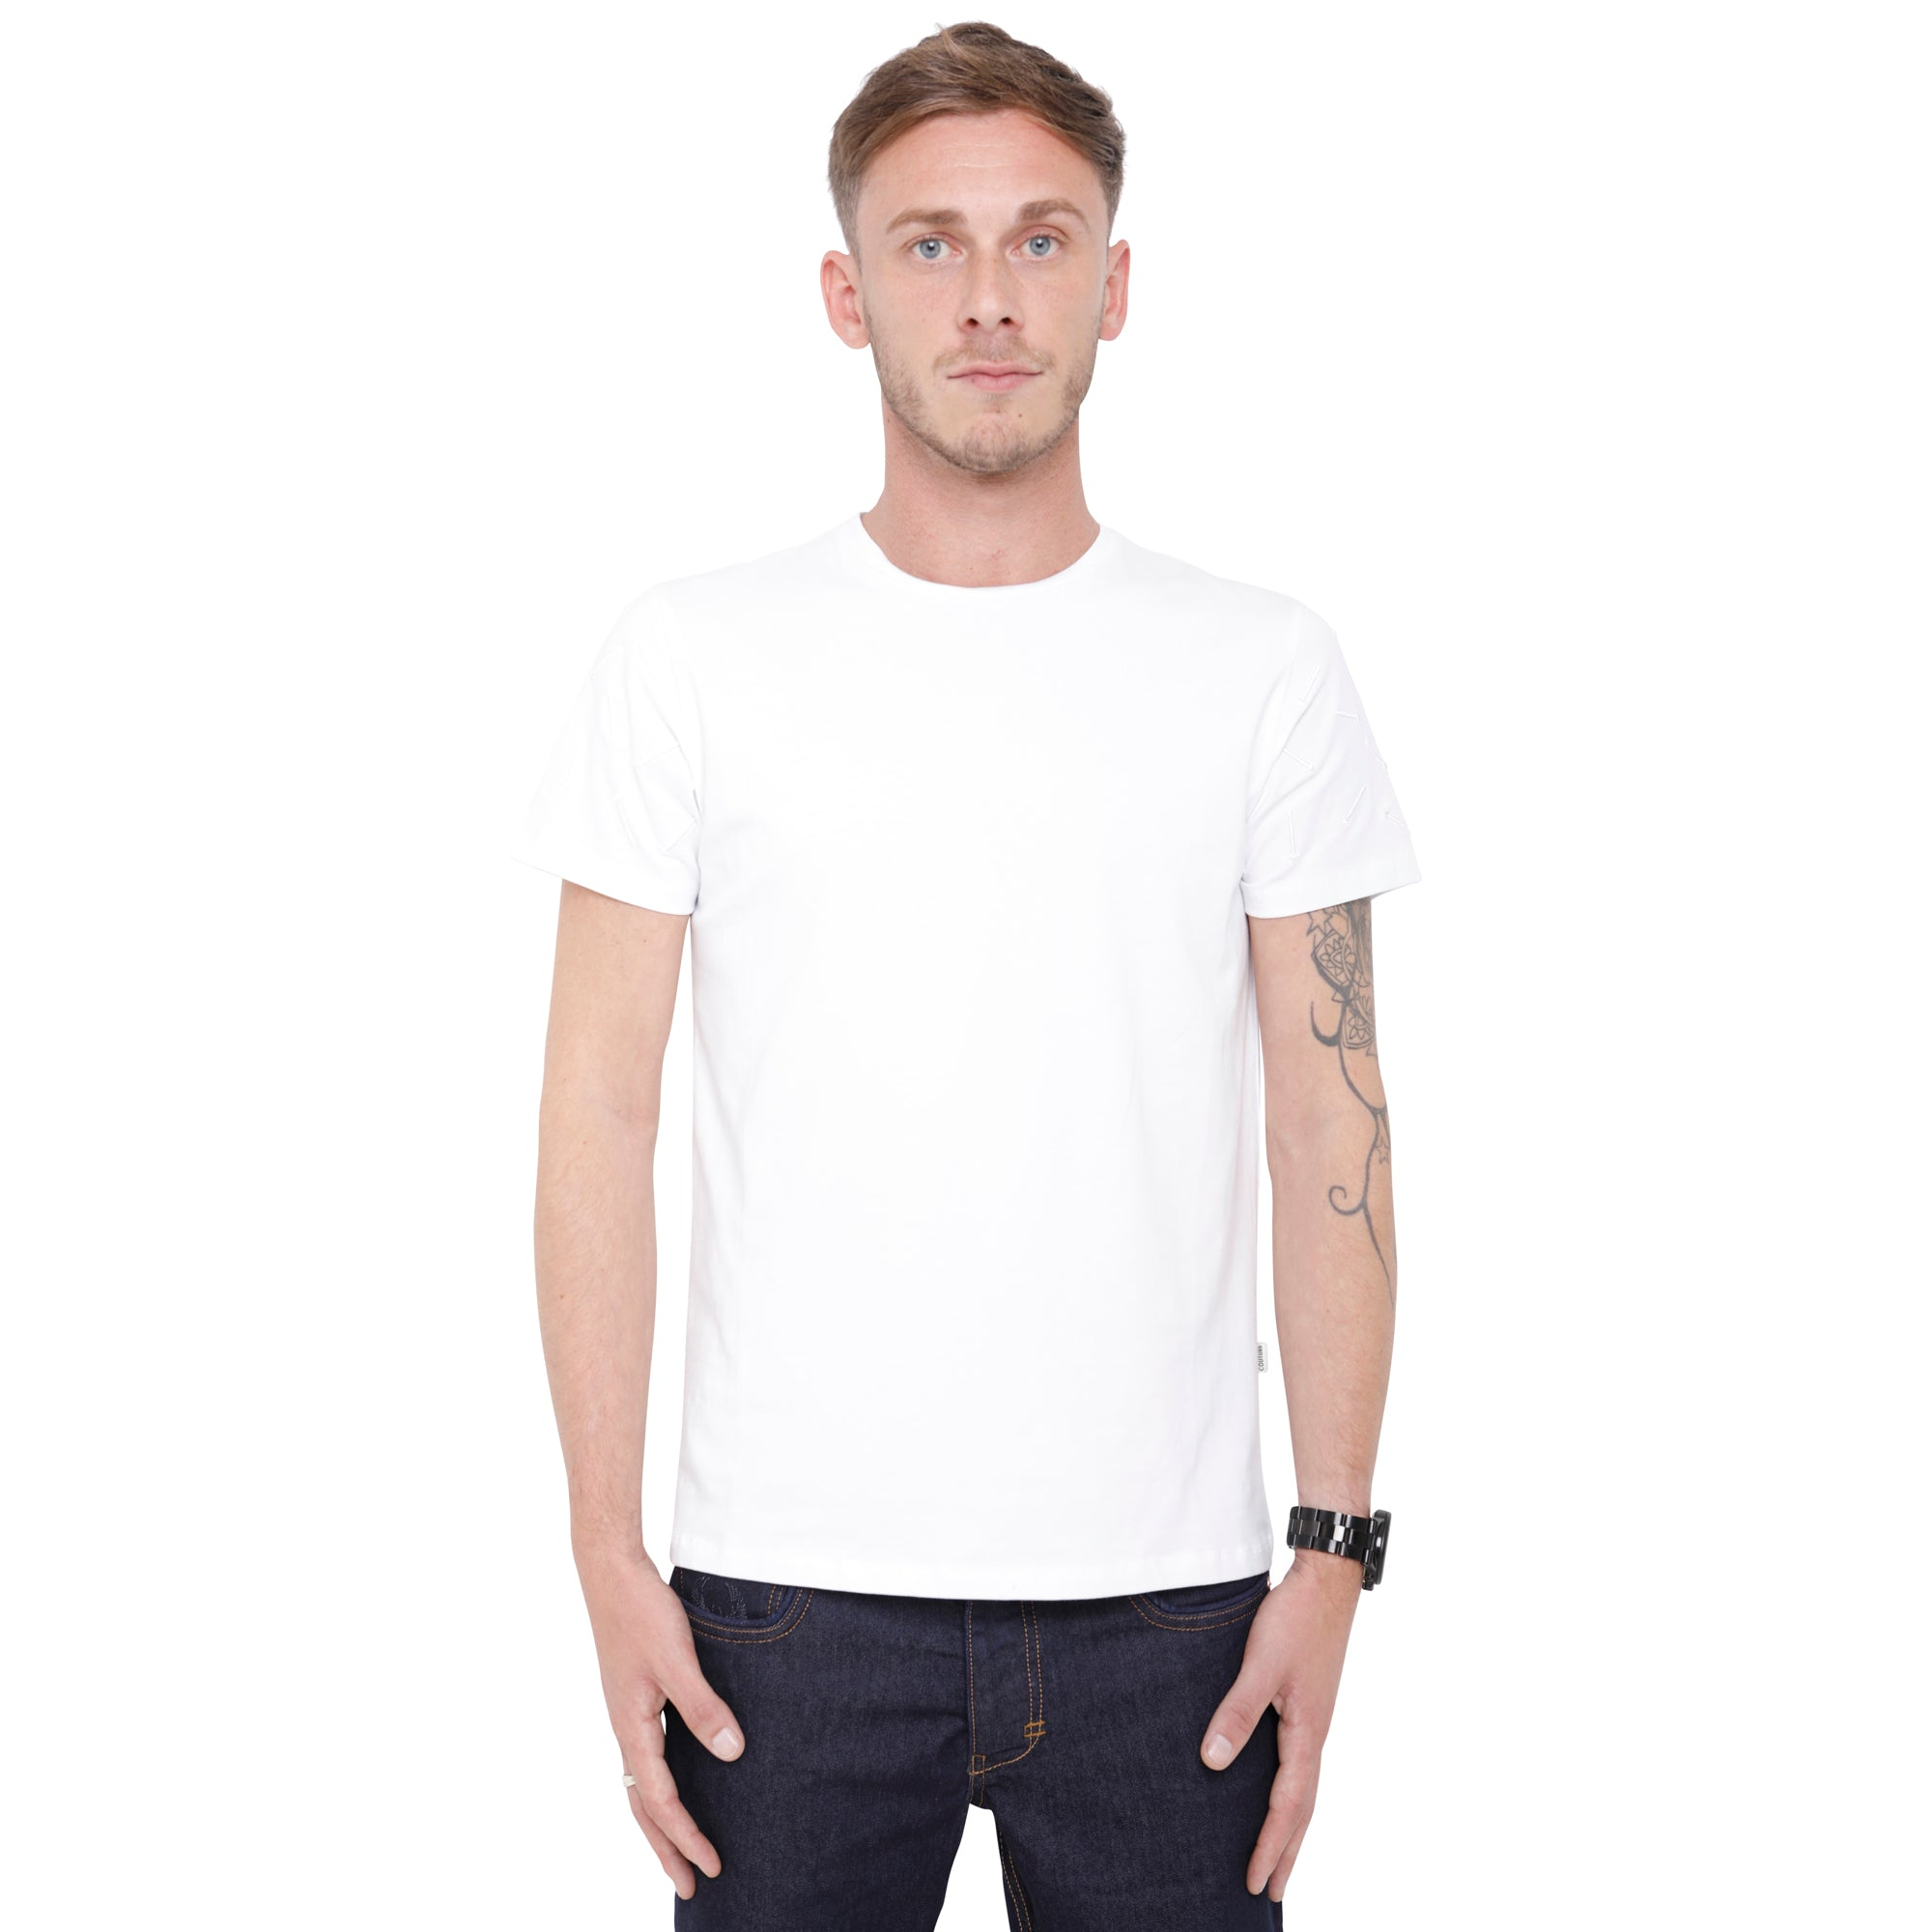 Style: Nekbet 93 Luxury Crew Neck T-Shirt - White - Junq Couture